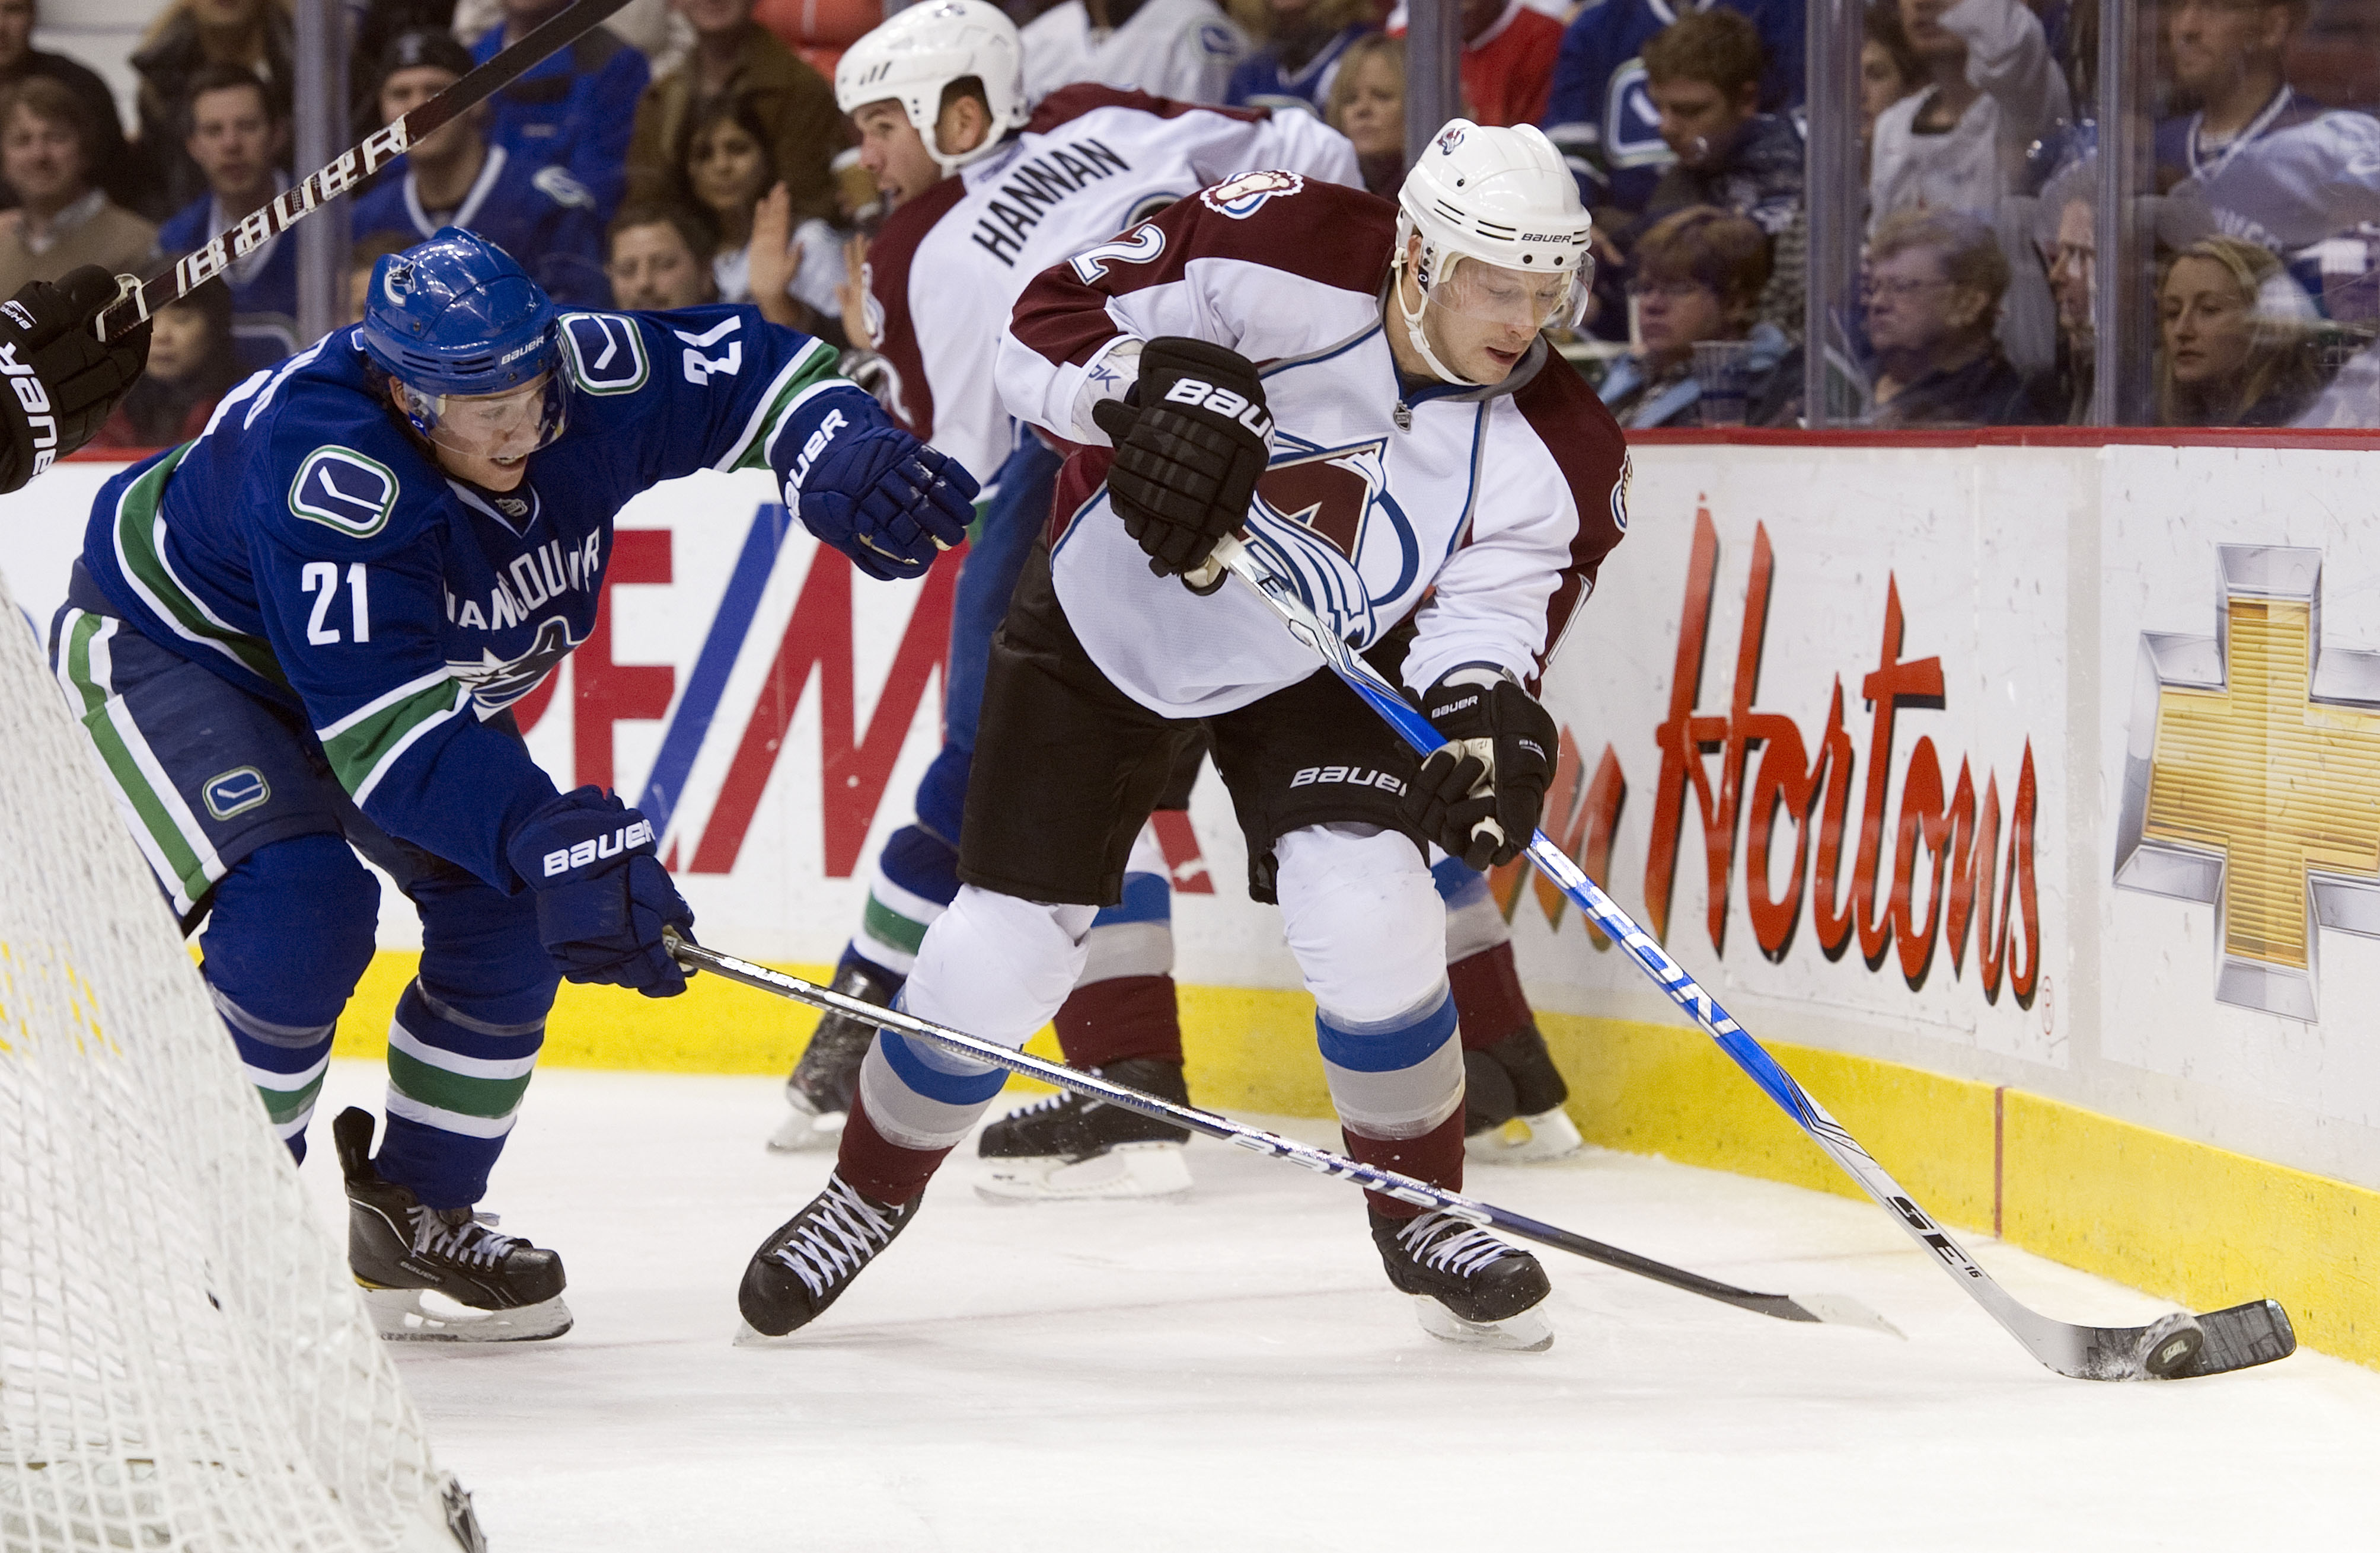 VANCOUVER, CANADA - NOVEMBER 24: Mason Raymond #21 of the Vancouver Canucks tries to check Kevin Porter #12 of the Colorado Avalanche off the puck during the second period in NHL action on November 24, 2010 at Rogers Arena in Vancouver, British Columbia,